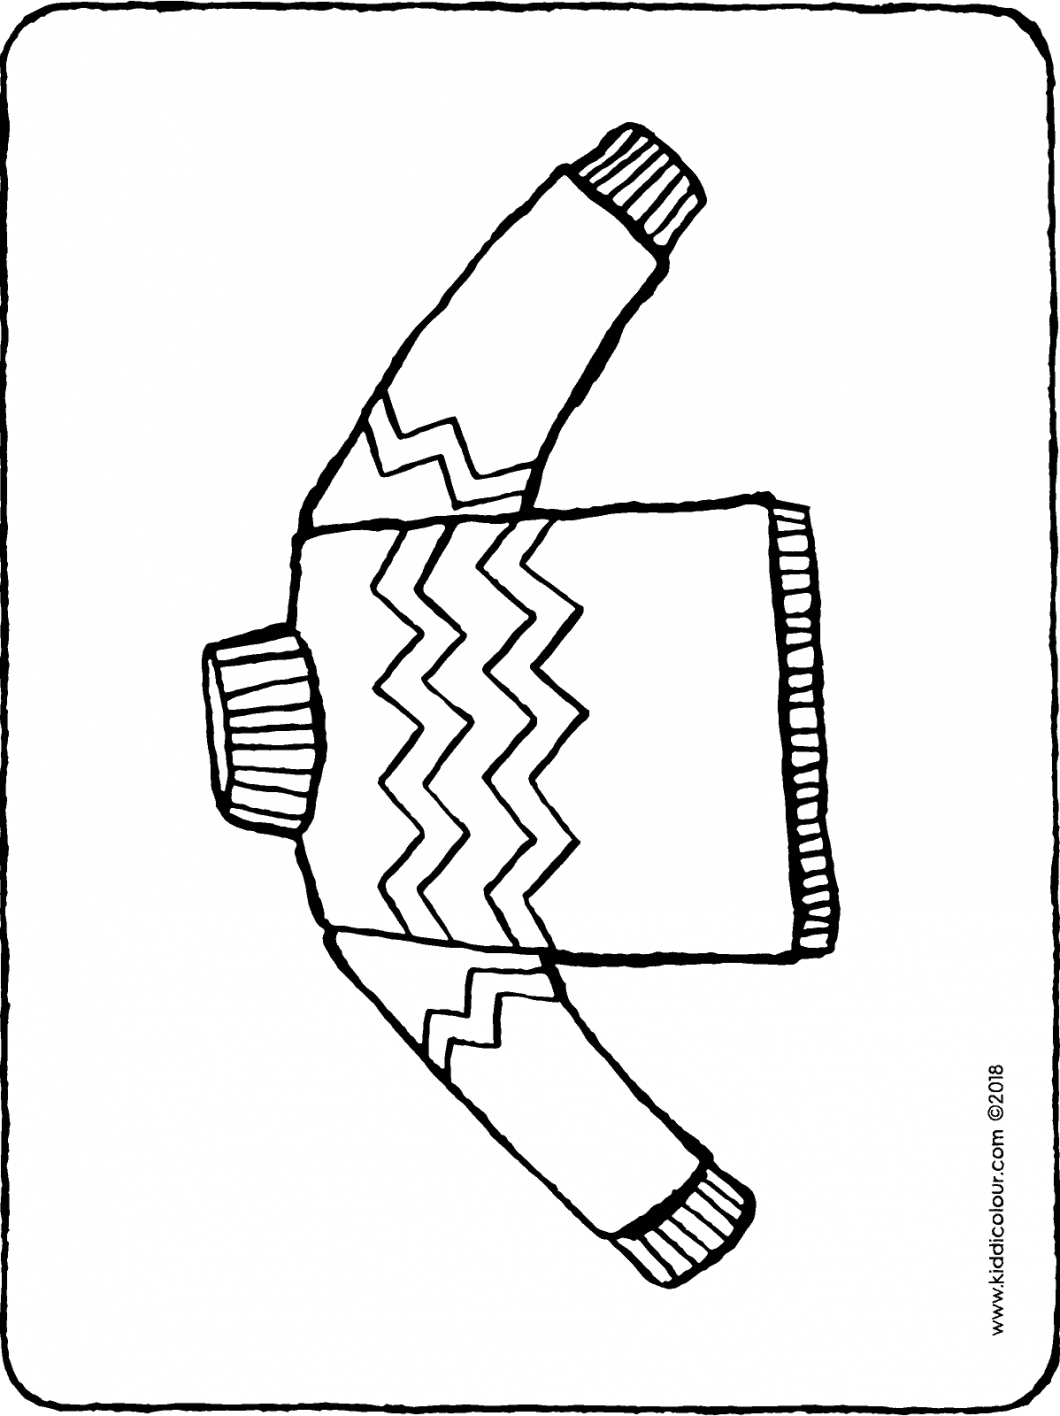 jumper colouring page drawing picture 01H